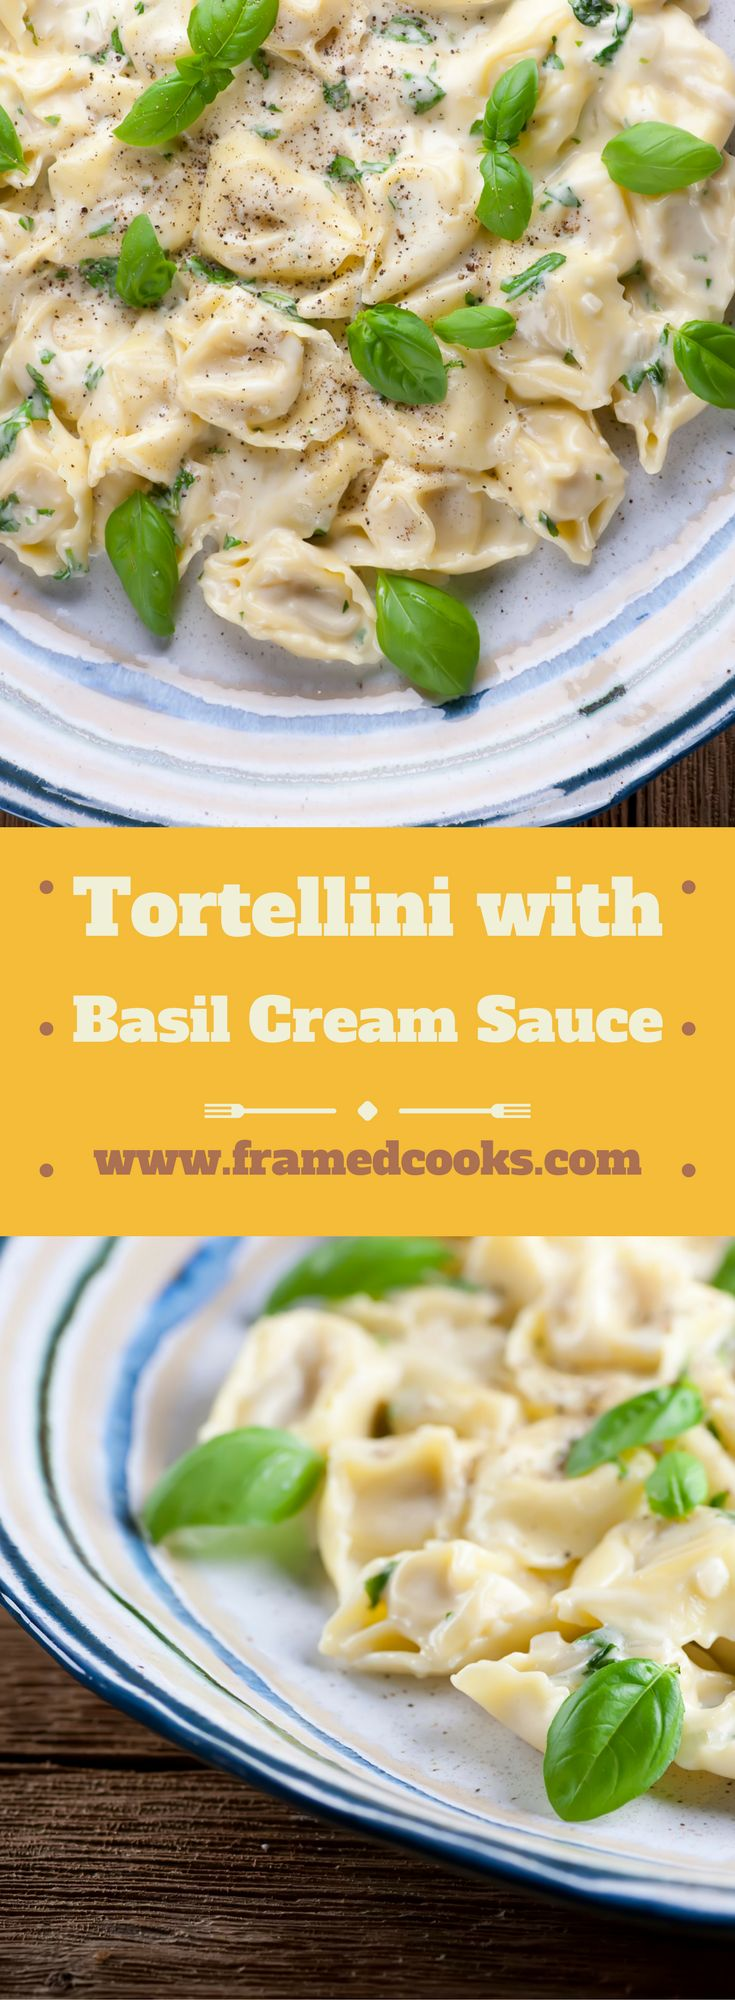 Tortellini meets alfredo sauce meets basil in this simple, elegant, creamy recipe for tortellini with basil cream sauce.  A perfect summer pasta supper!